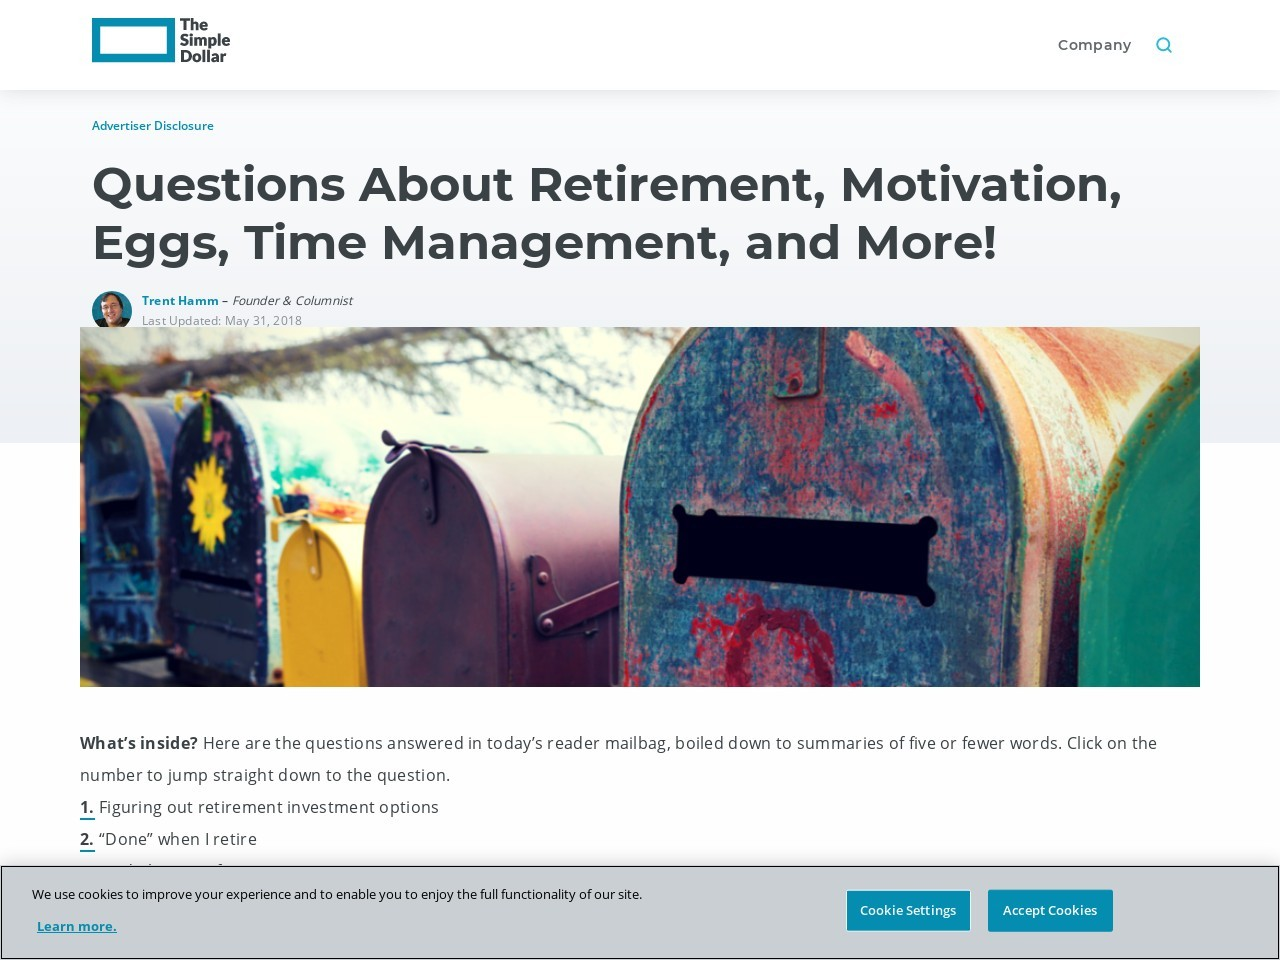 Questions About Retirement, Motivation, Eggs, Time Management, and More!